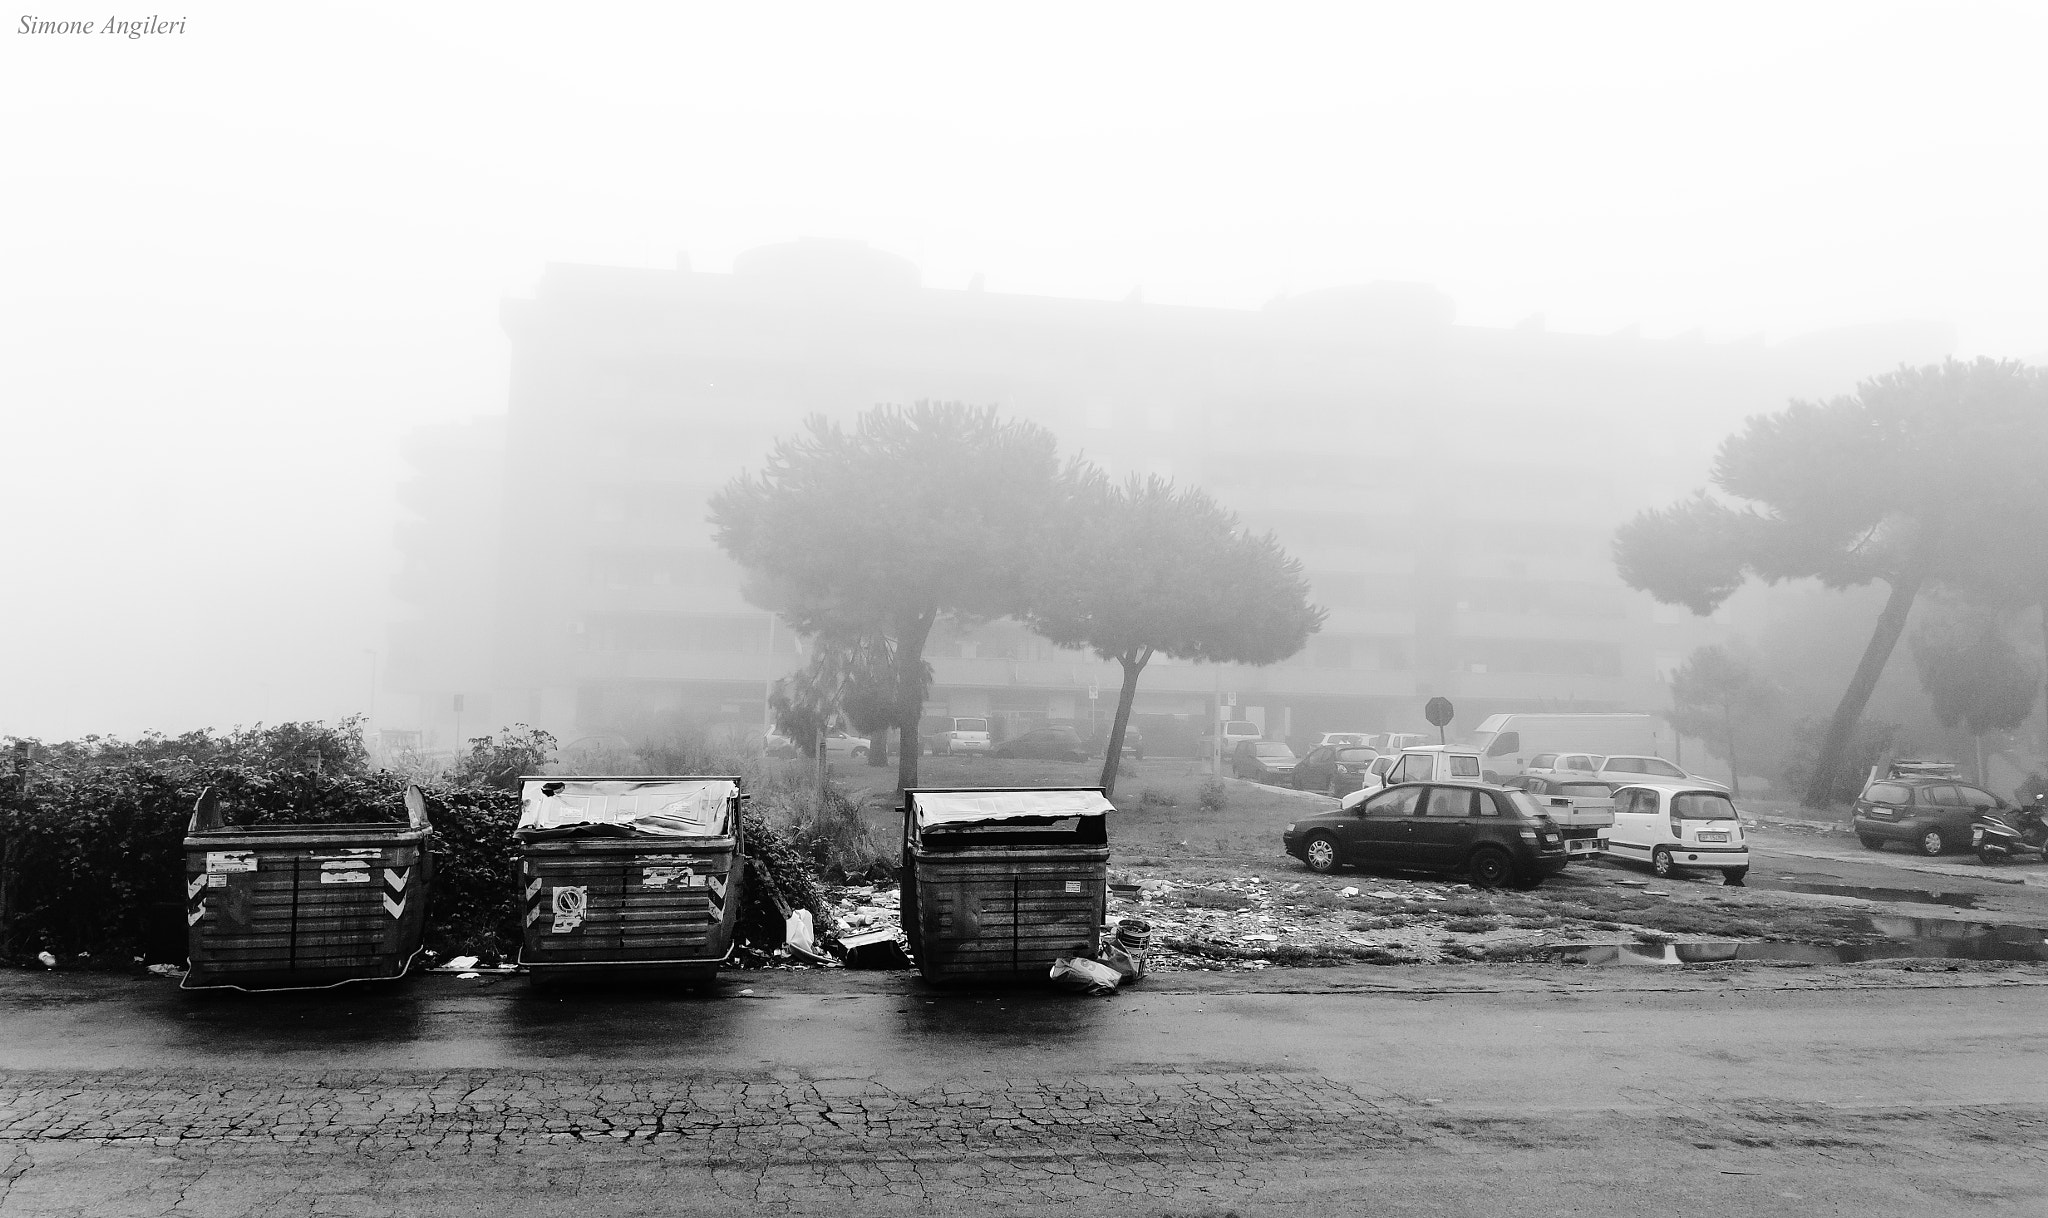 Photograph Nebbia by Simon Nik on 500px